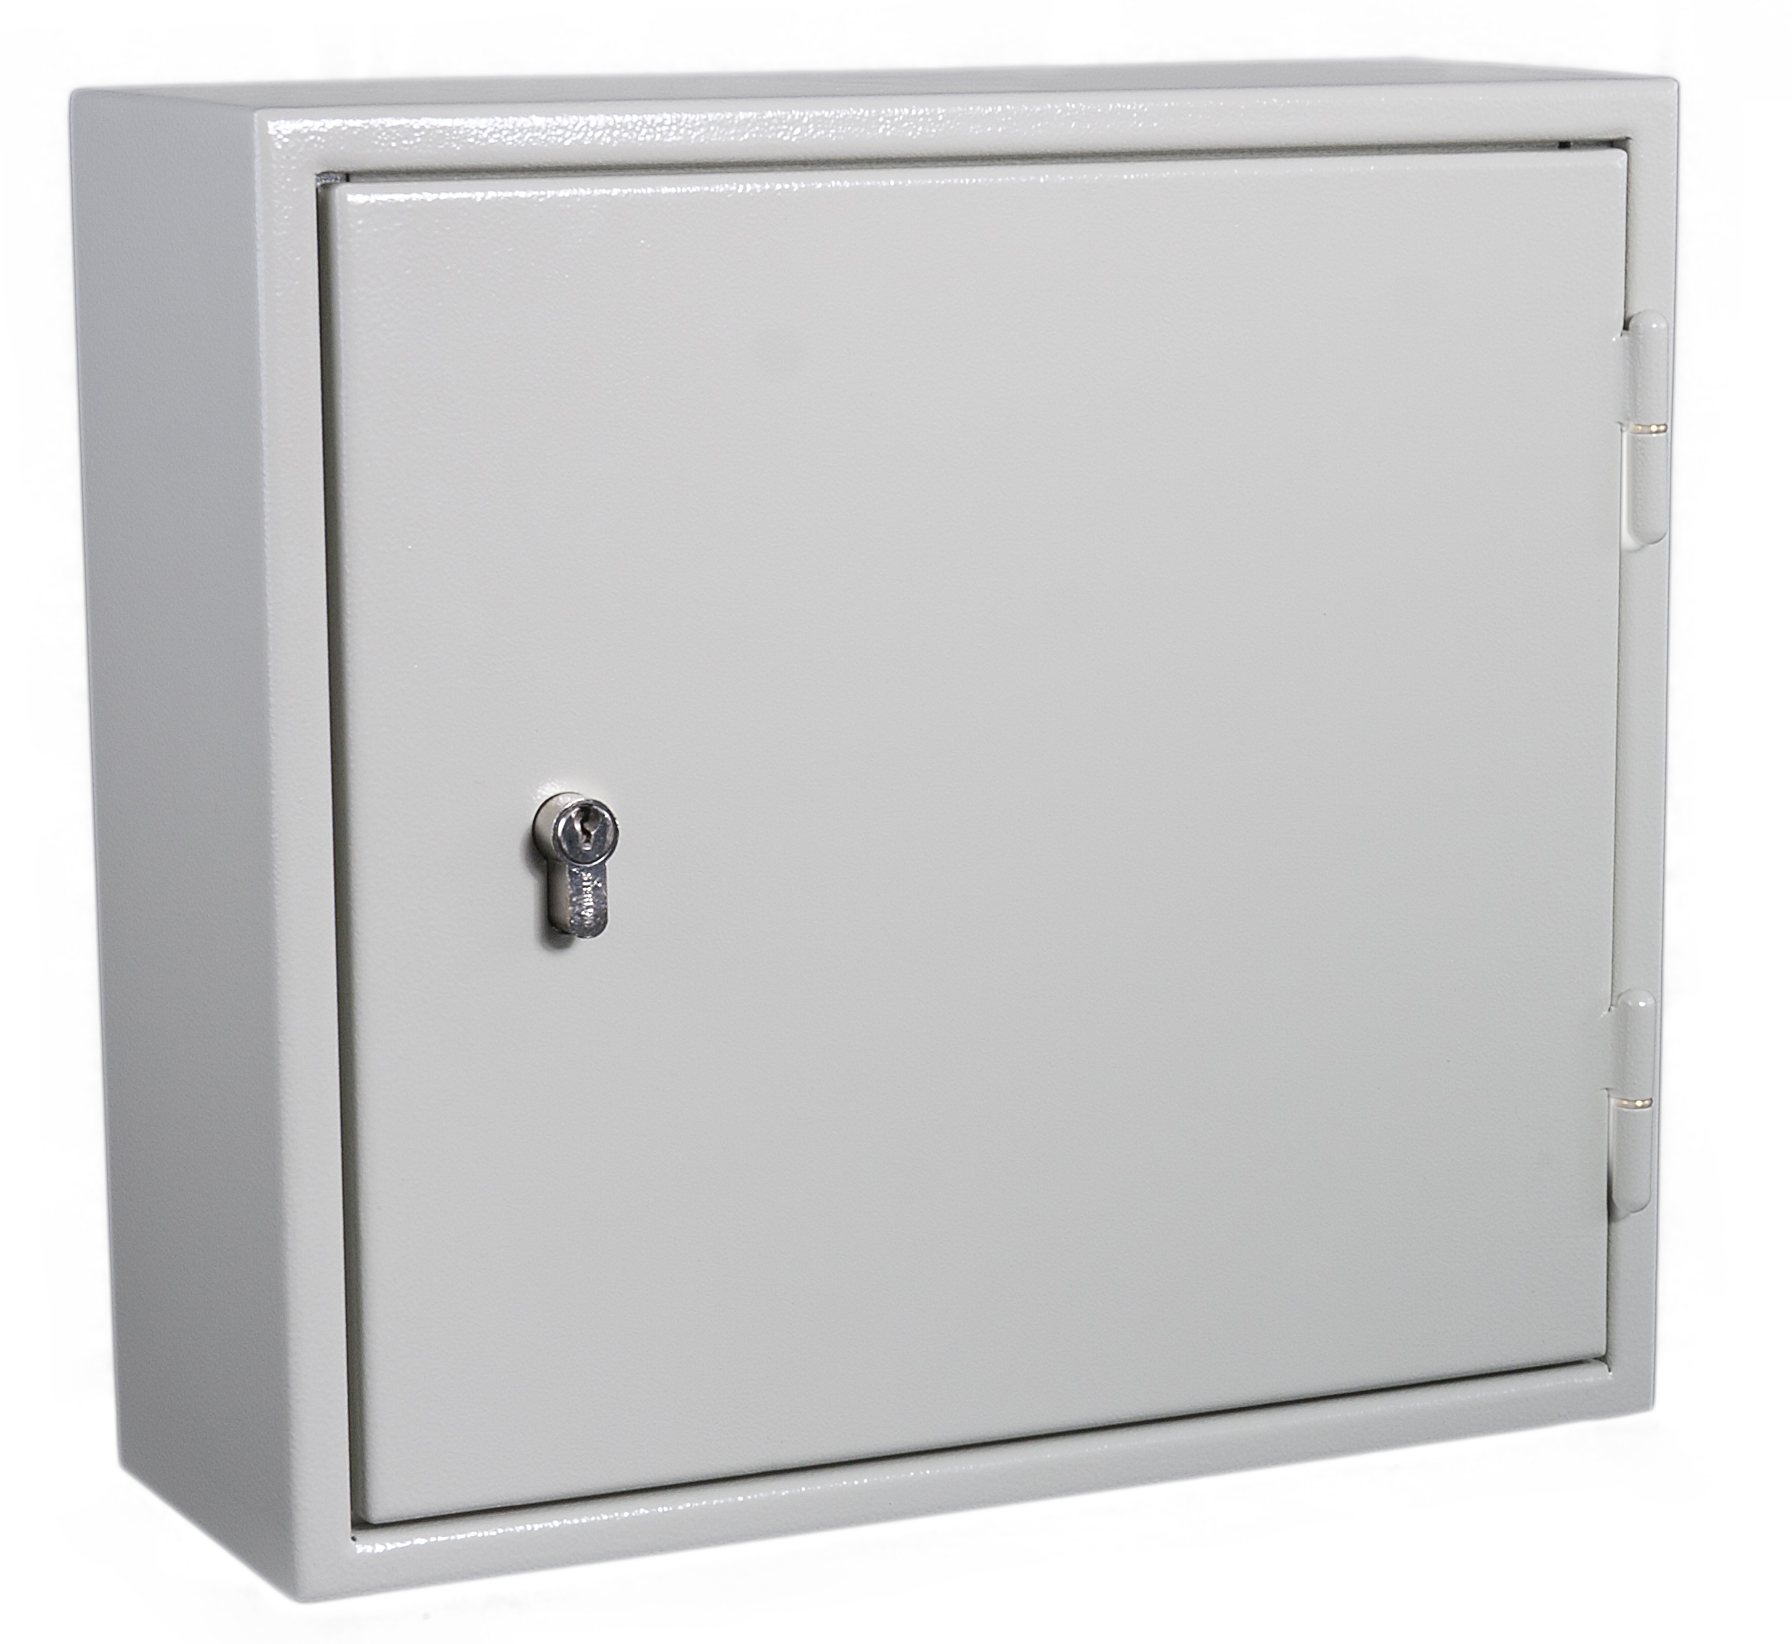 Extra Security Deep Cabinets